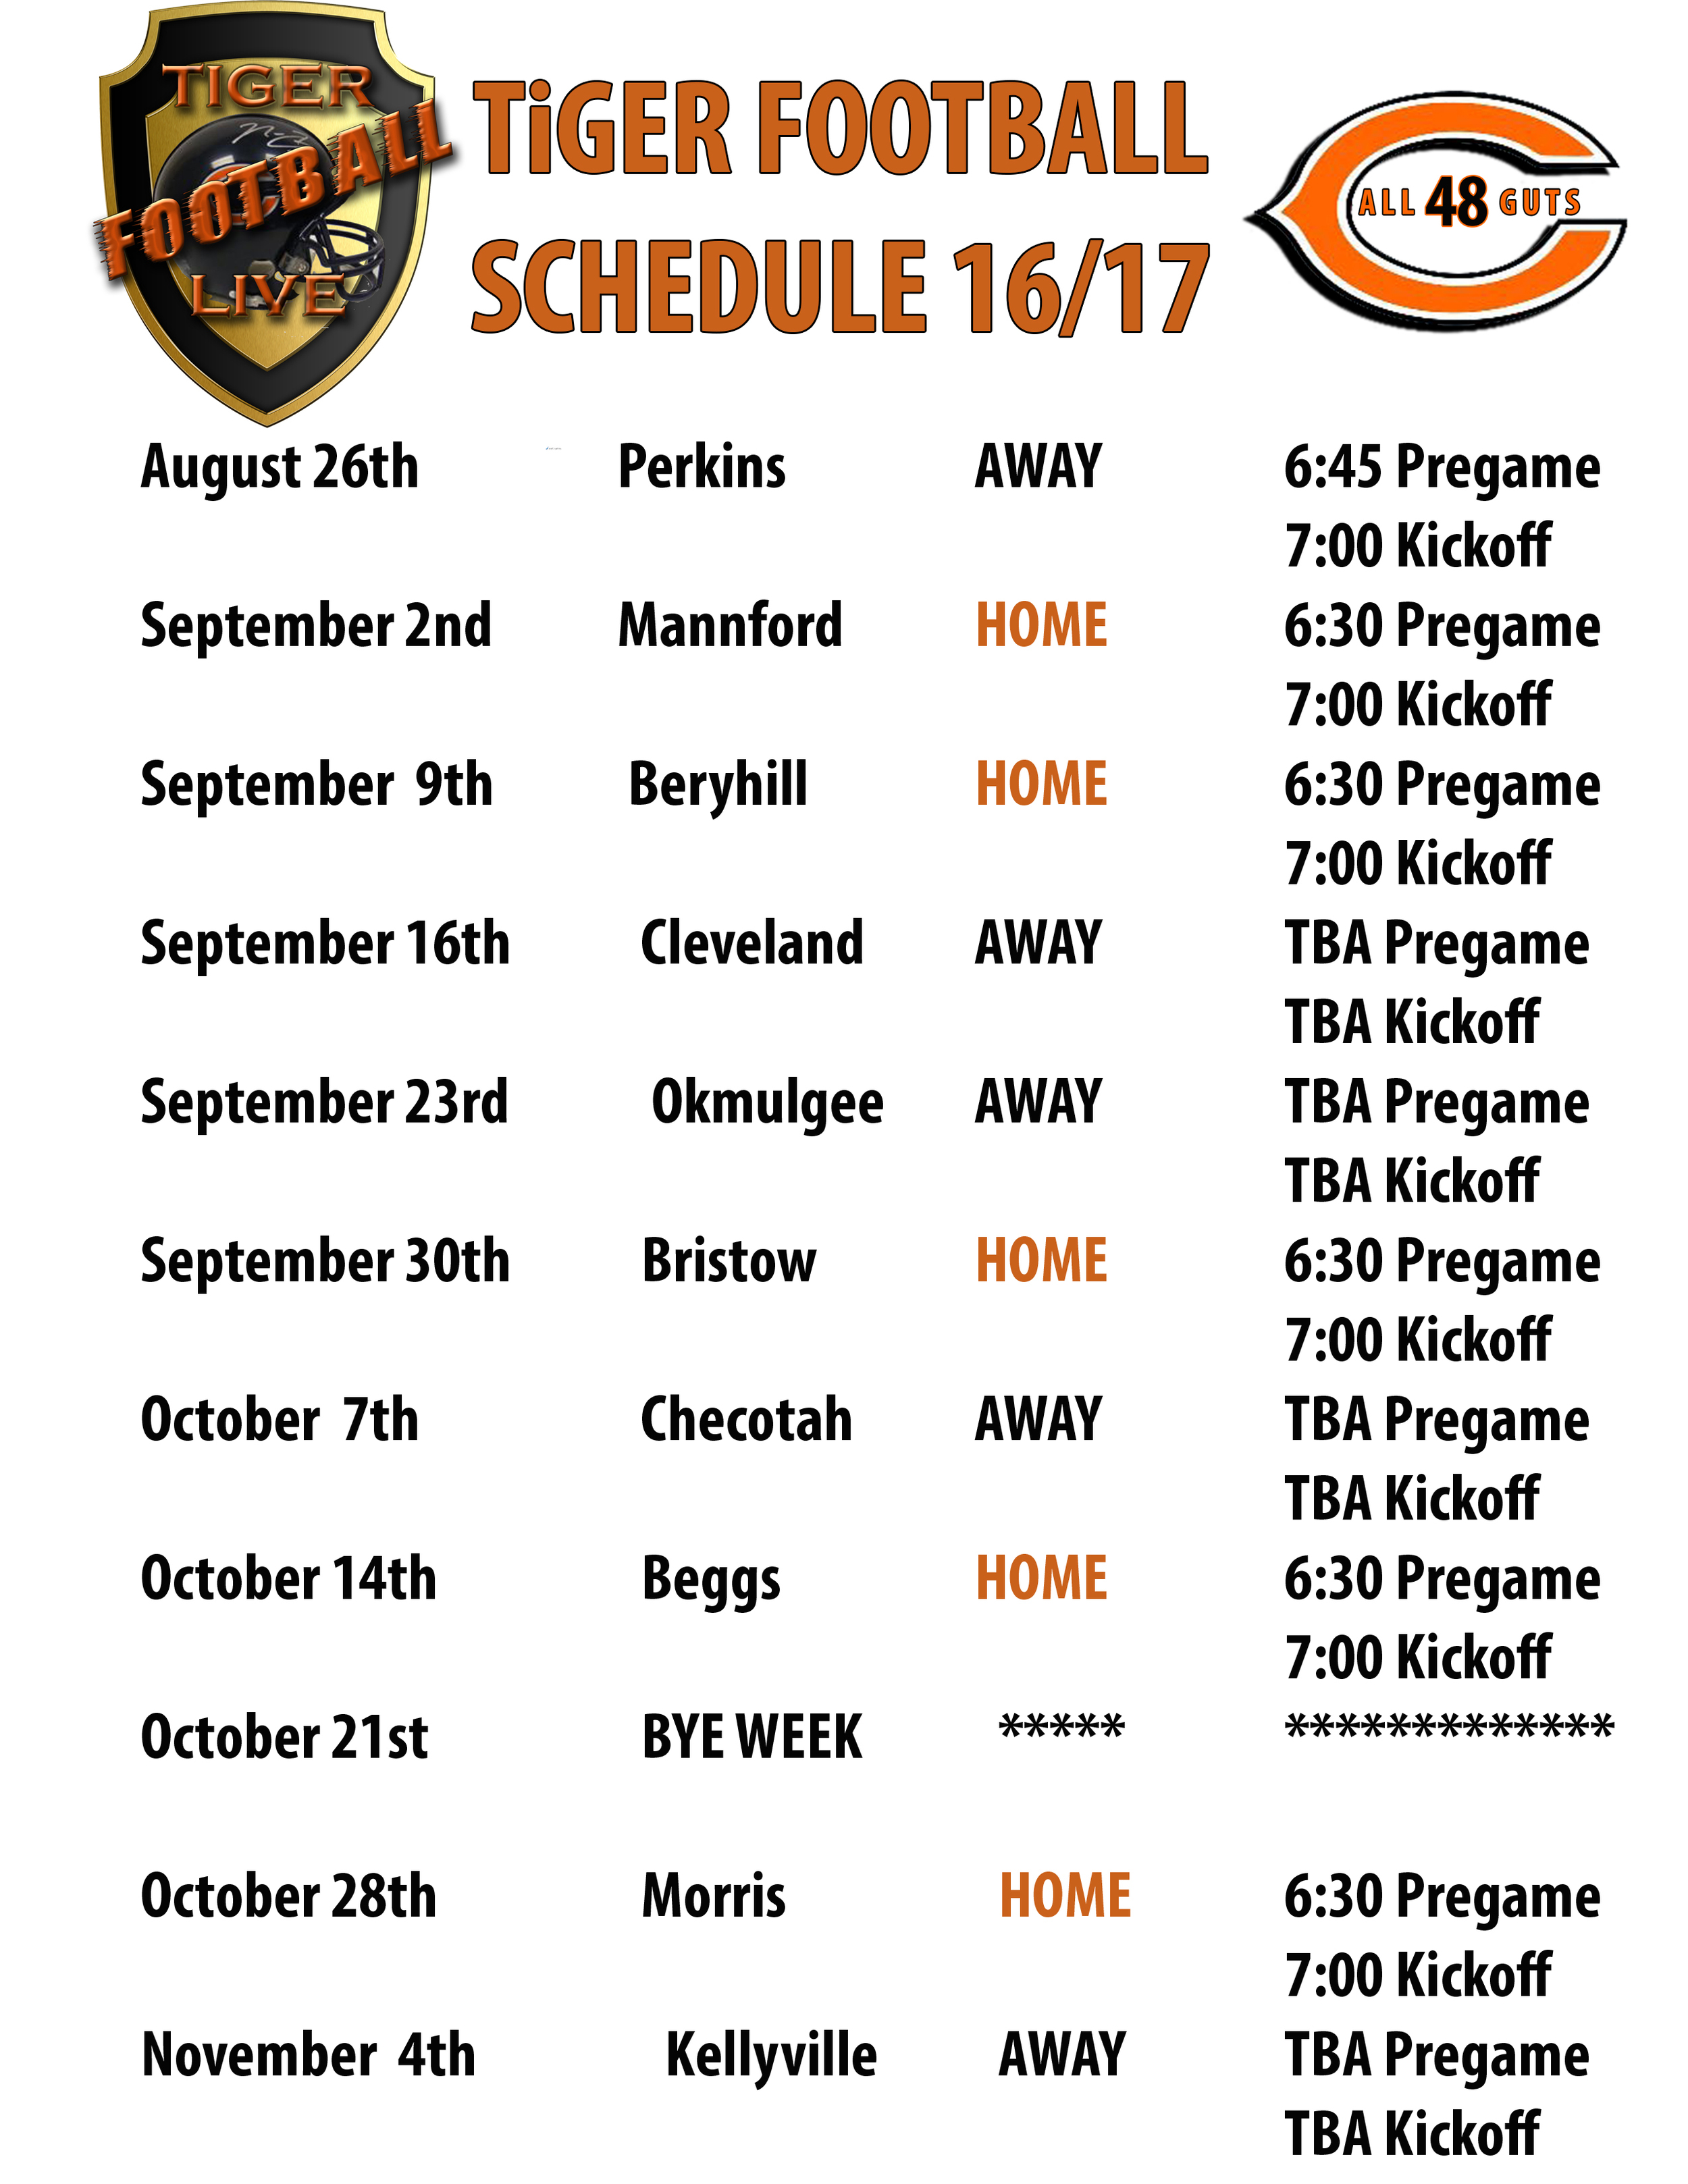 **Hall Of Fame Induction Ceremony September 2nd - **Homecoming September 30th  - ** Senior Night October 28th - All ceremony dates are still subject to change.